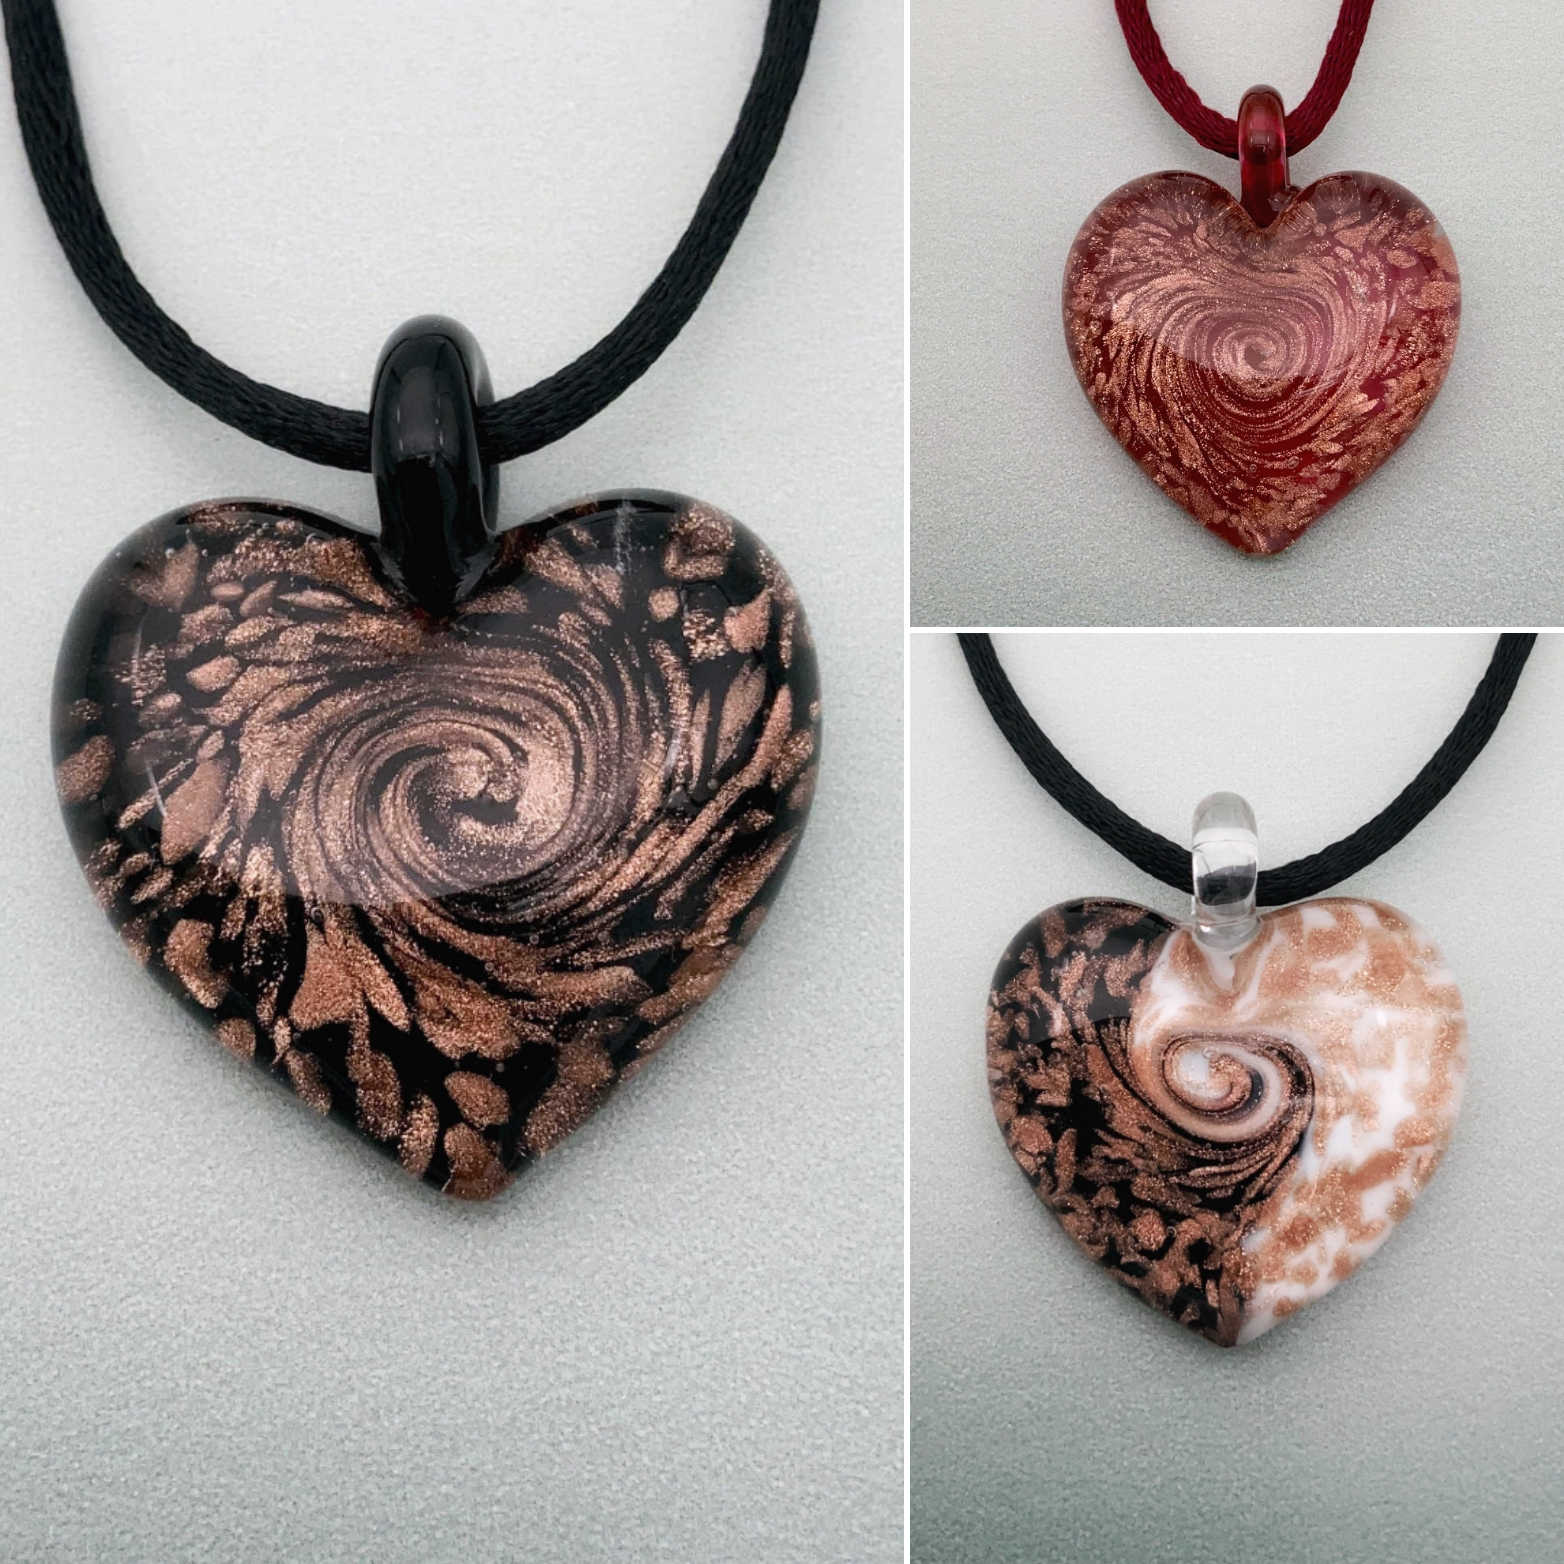 Classic Venice Heart of passion necklaces